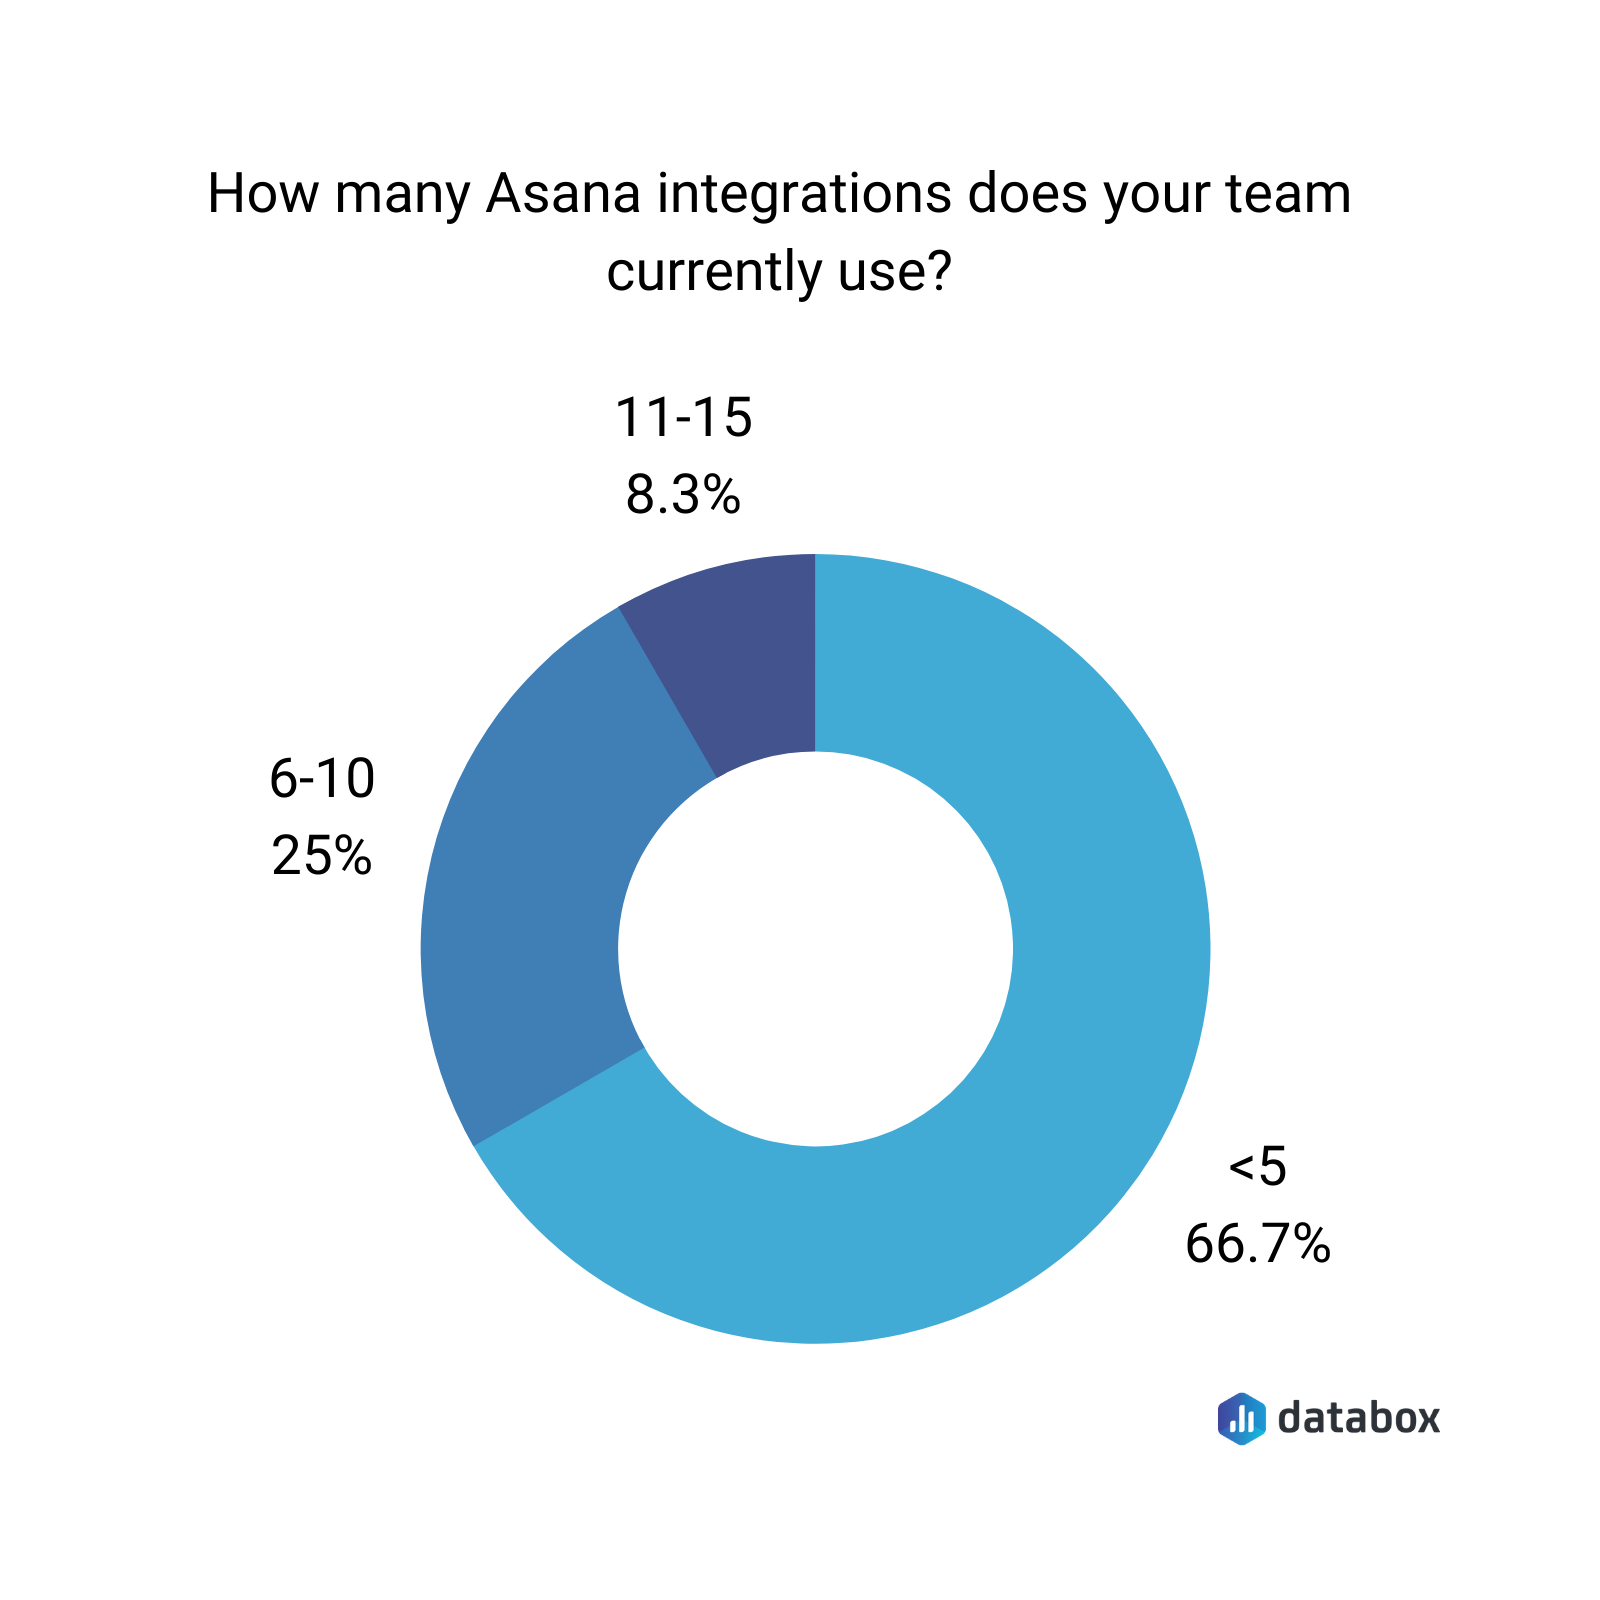 How many Asana integrations does your team currently use?